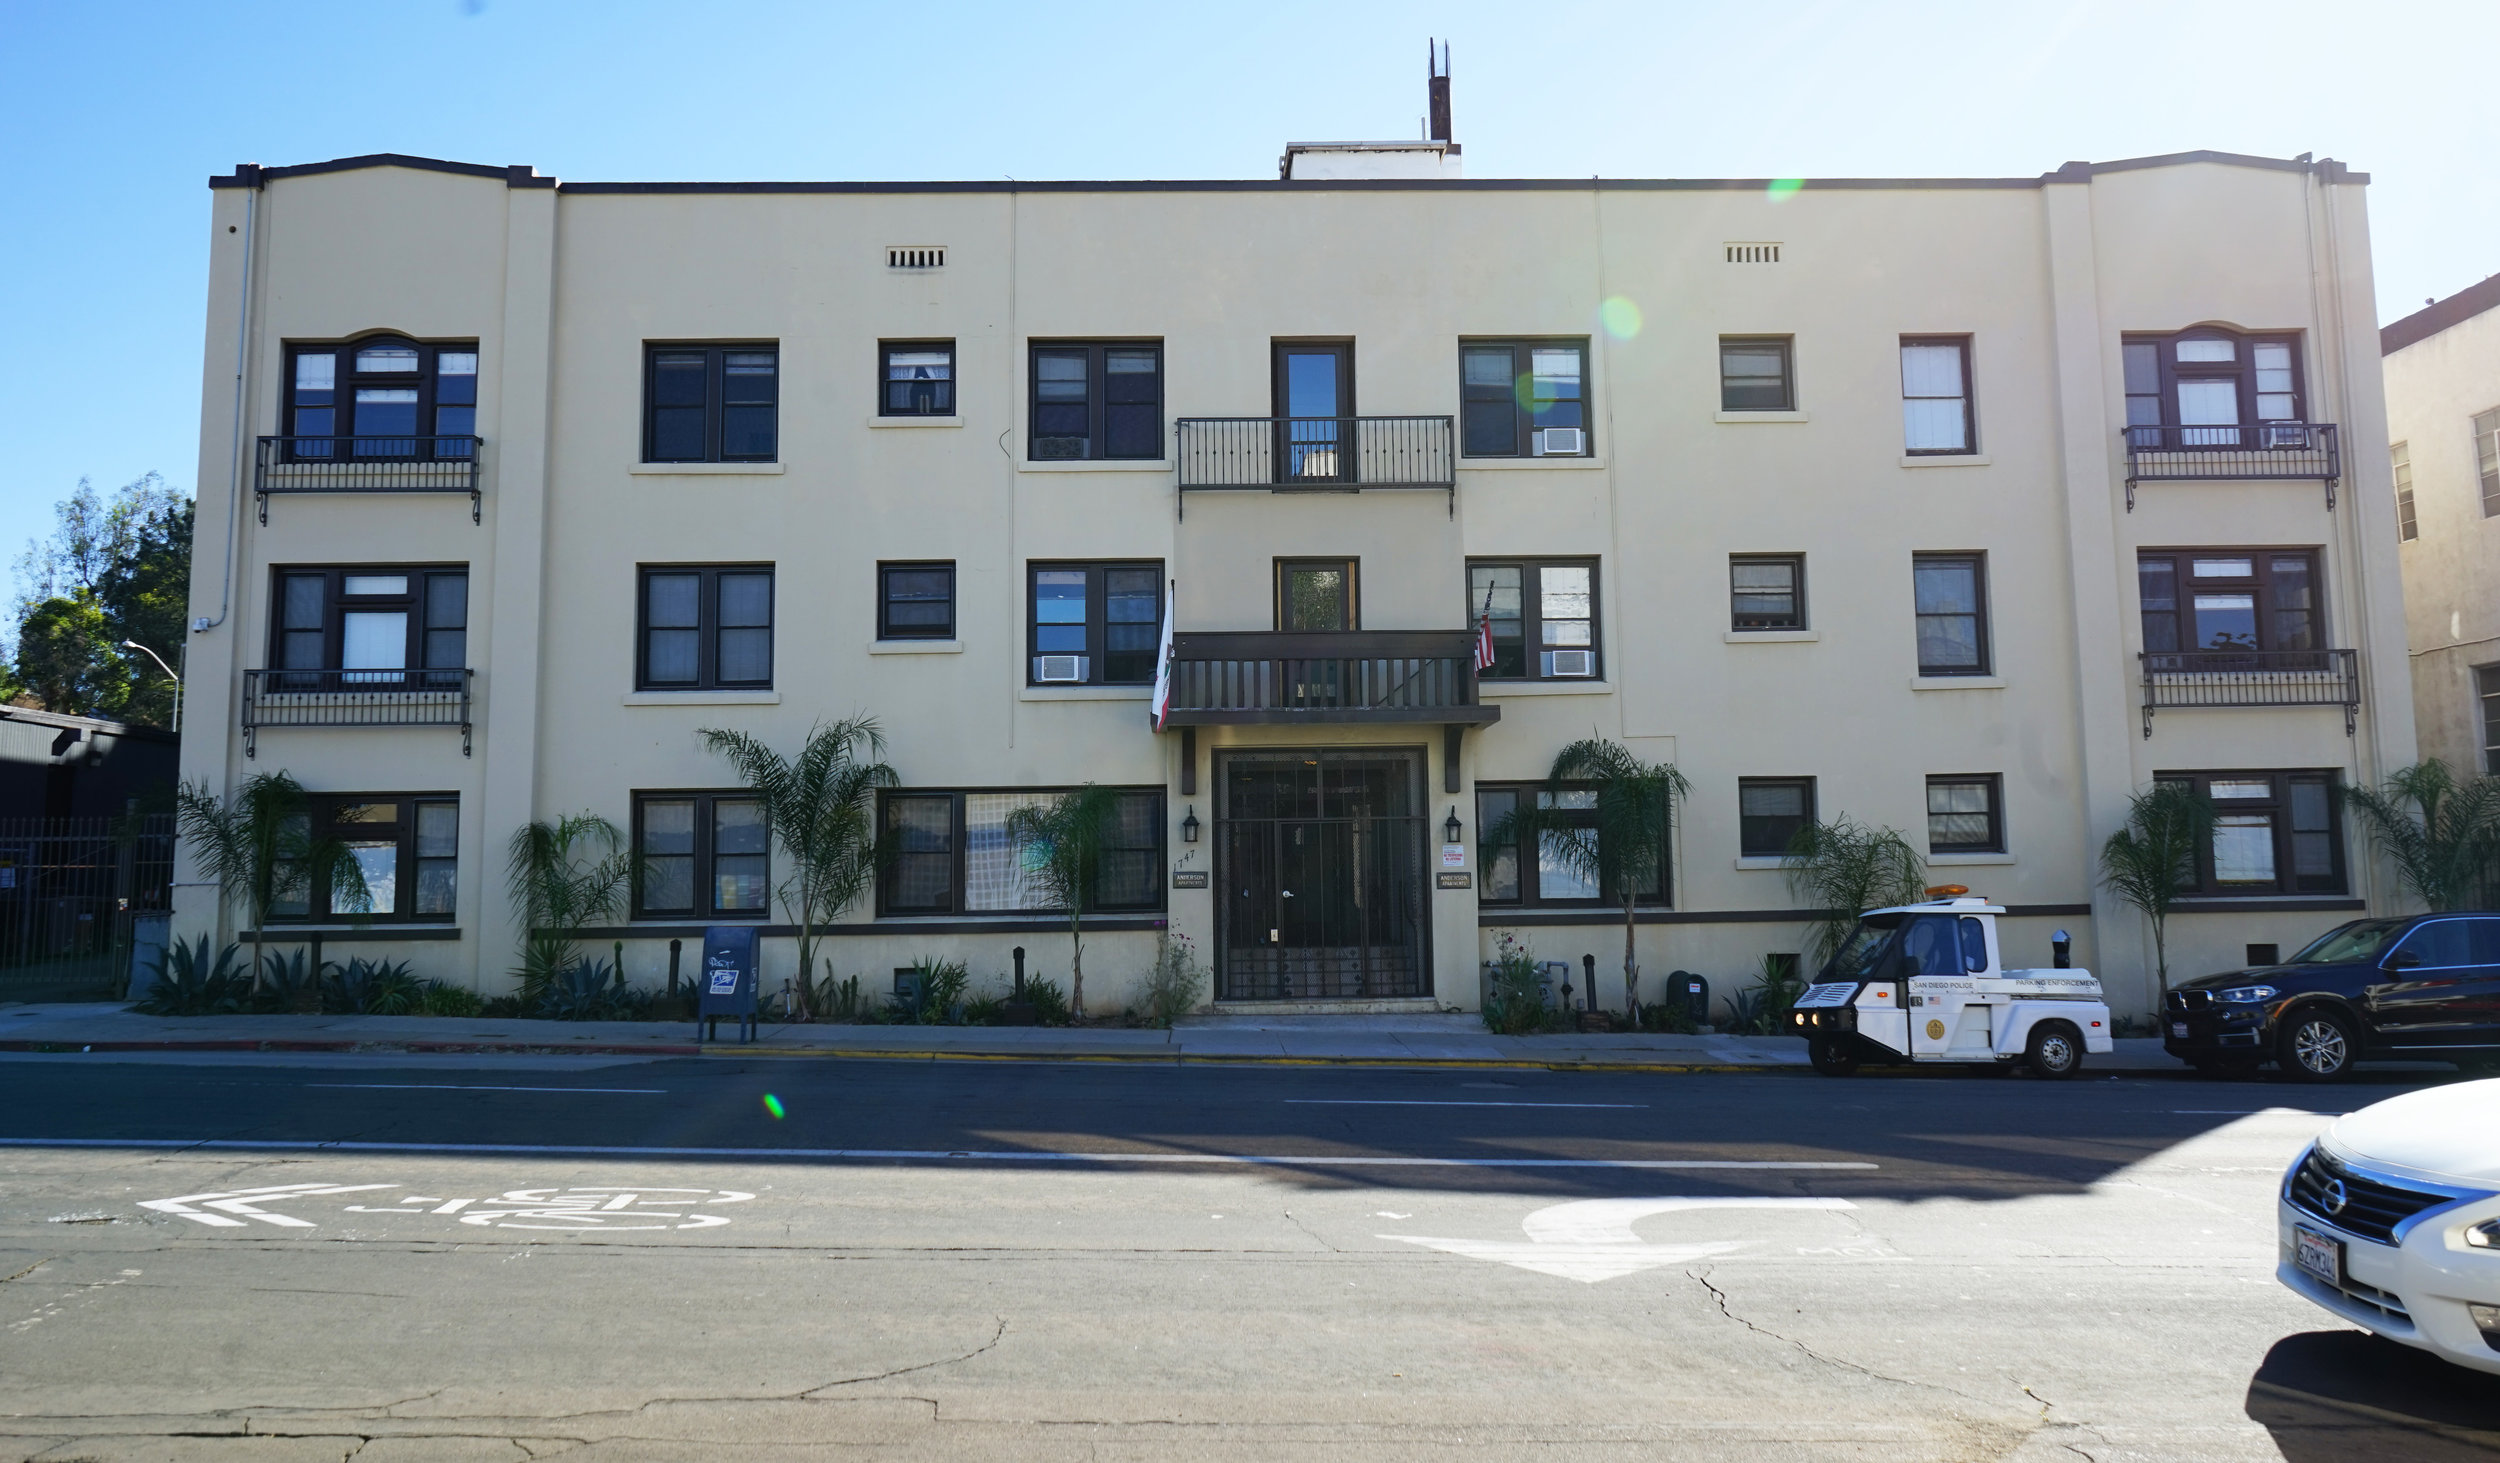 1747 5th Avenue - Bankers Hill26 Units$5,000,000